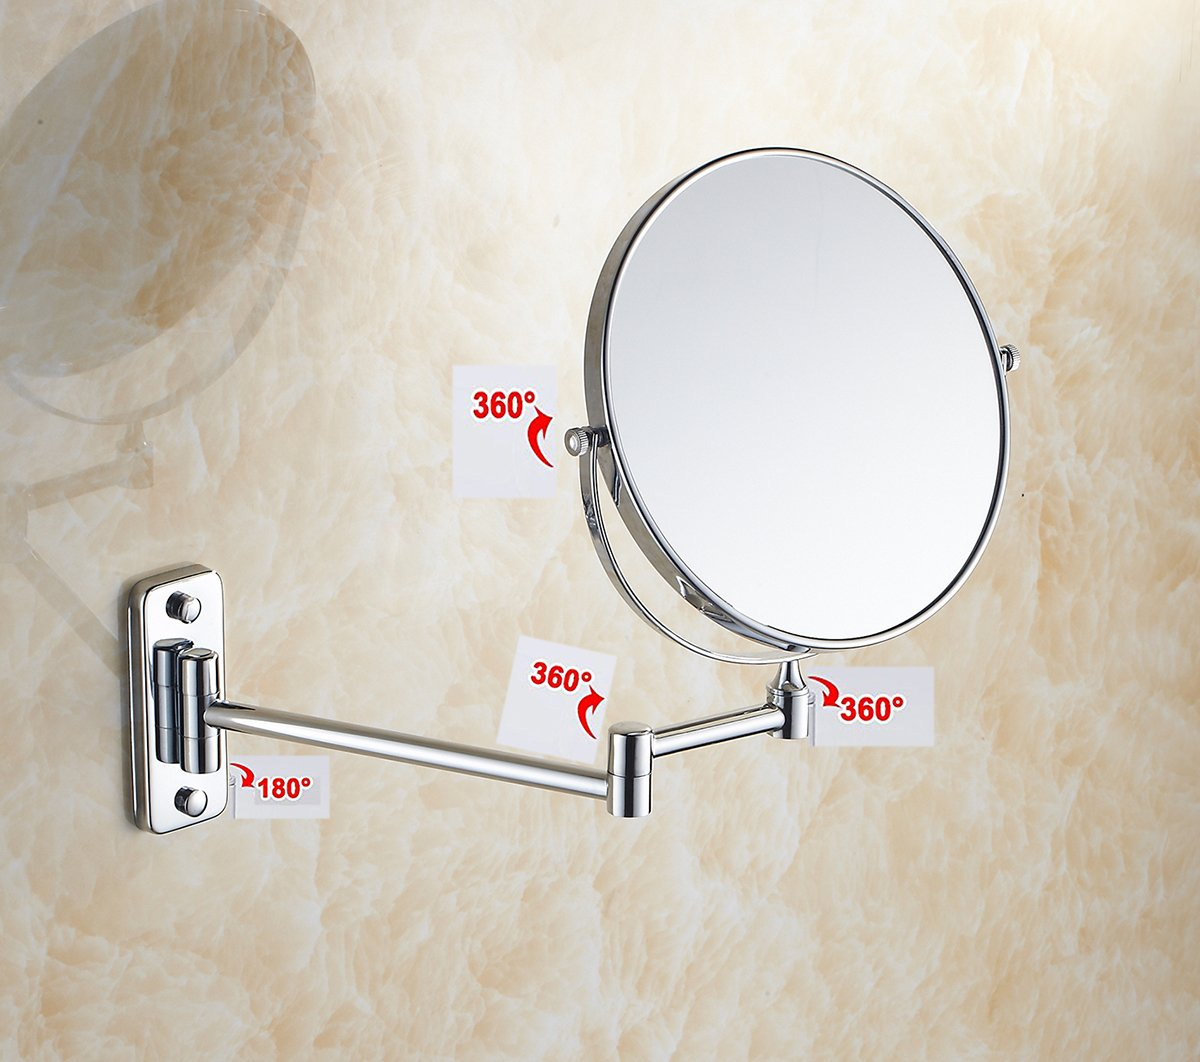 IBeaty Bathroom Mirror 8 inch Wall Mount Makeup Mirror Double-Sided Face Mirror, Swivel Vanity Mirror 1x and 7x Magnification Polished Chrome Finished by IBeaty (Image #2)